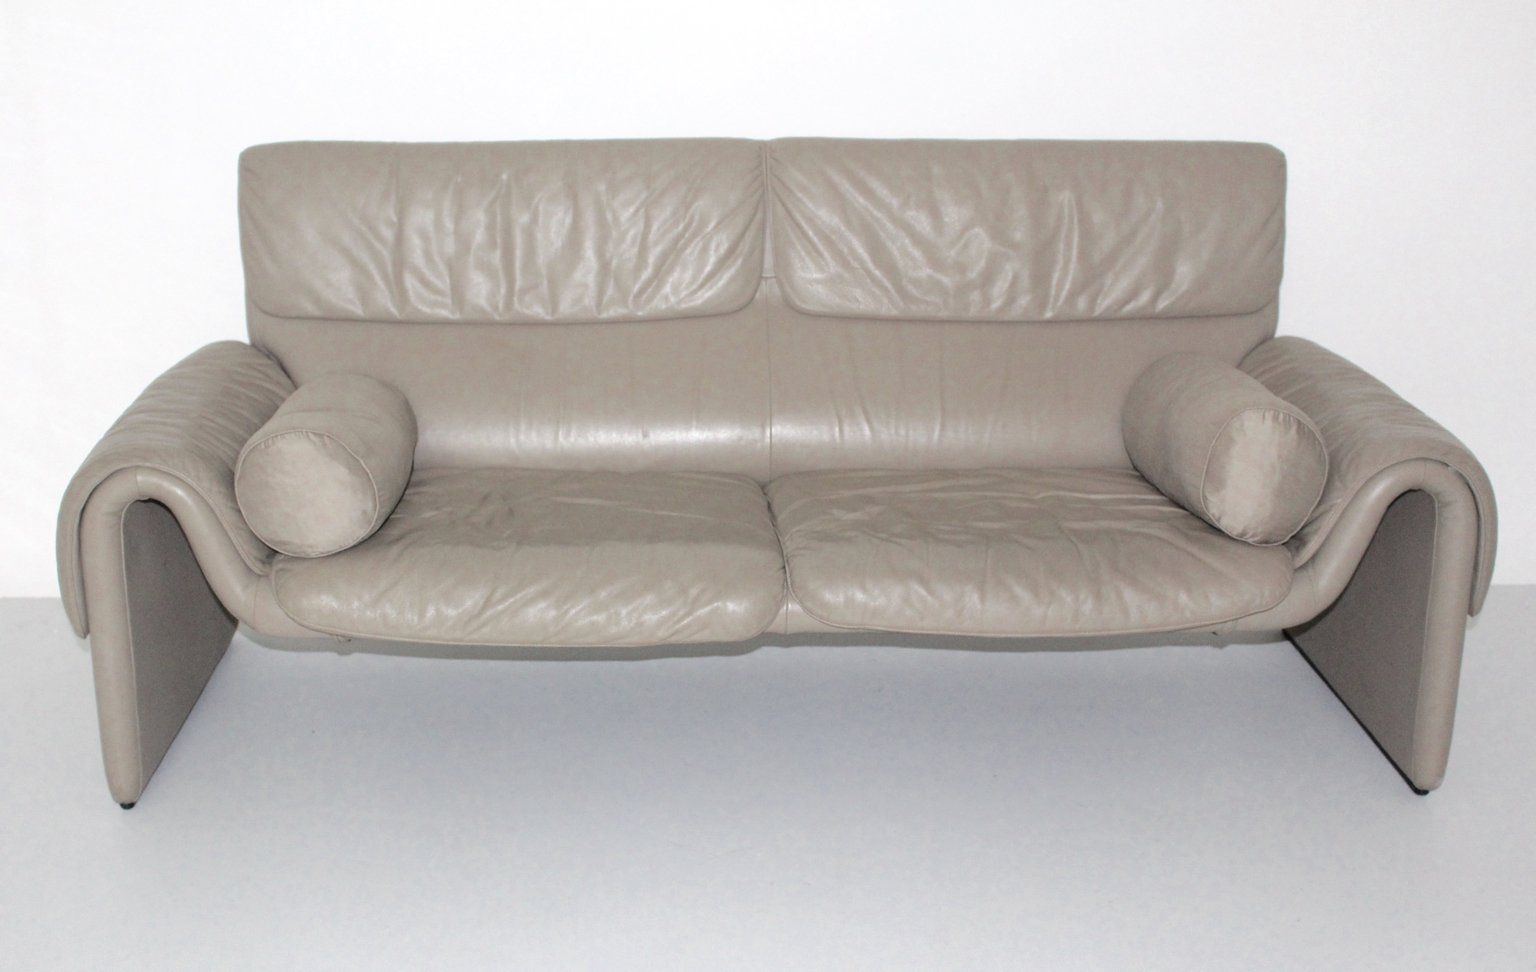 vintage ds 2011 leather sofa from de sede 1980s for sale at pamono. Black Bedroom Furniture Sets. Home Design Ideas